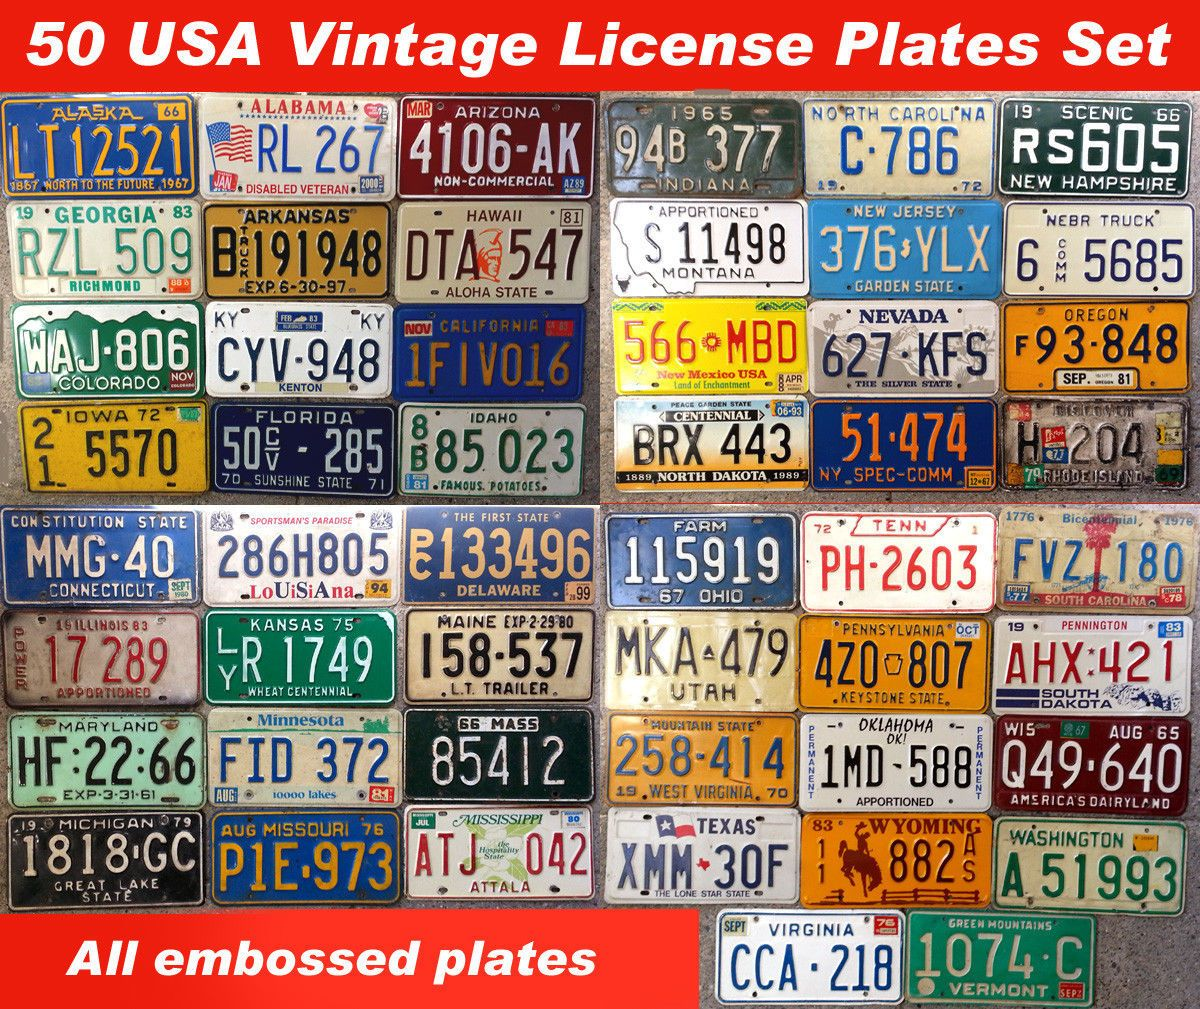 Fantastic Antique Number Plates Collection - Classic Cars Ideas .  sc 1 st  Boiq.info & Old Fashioned Antique Number Plates Ornament - Classic Cars Ideas ...